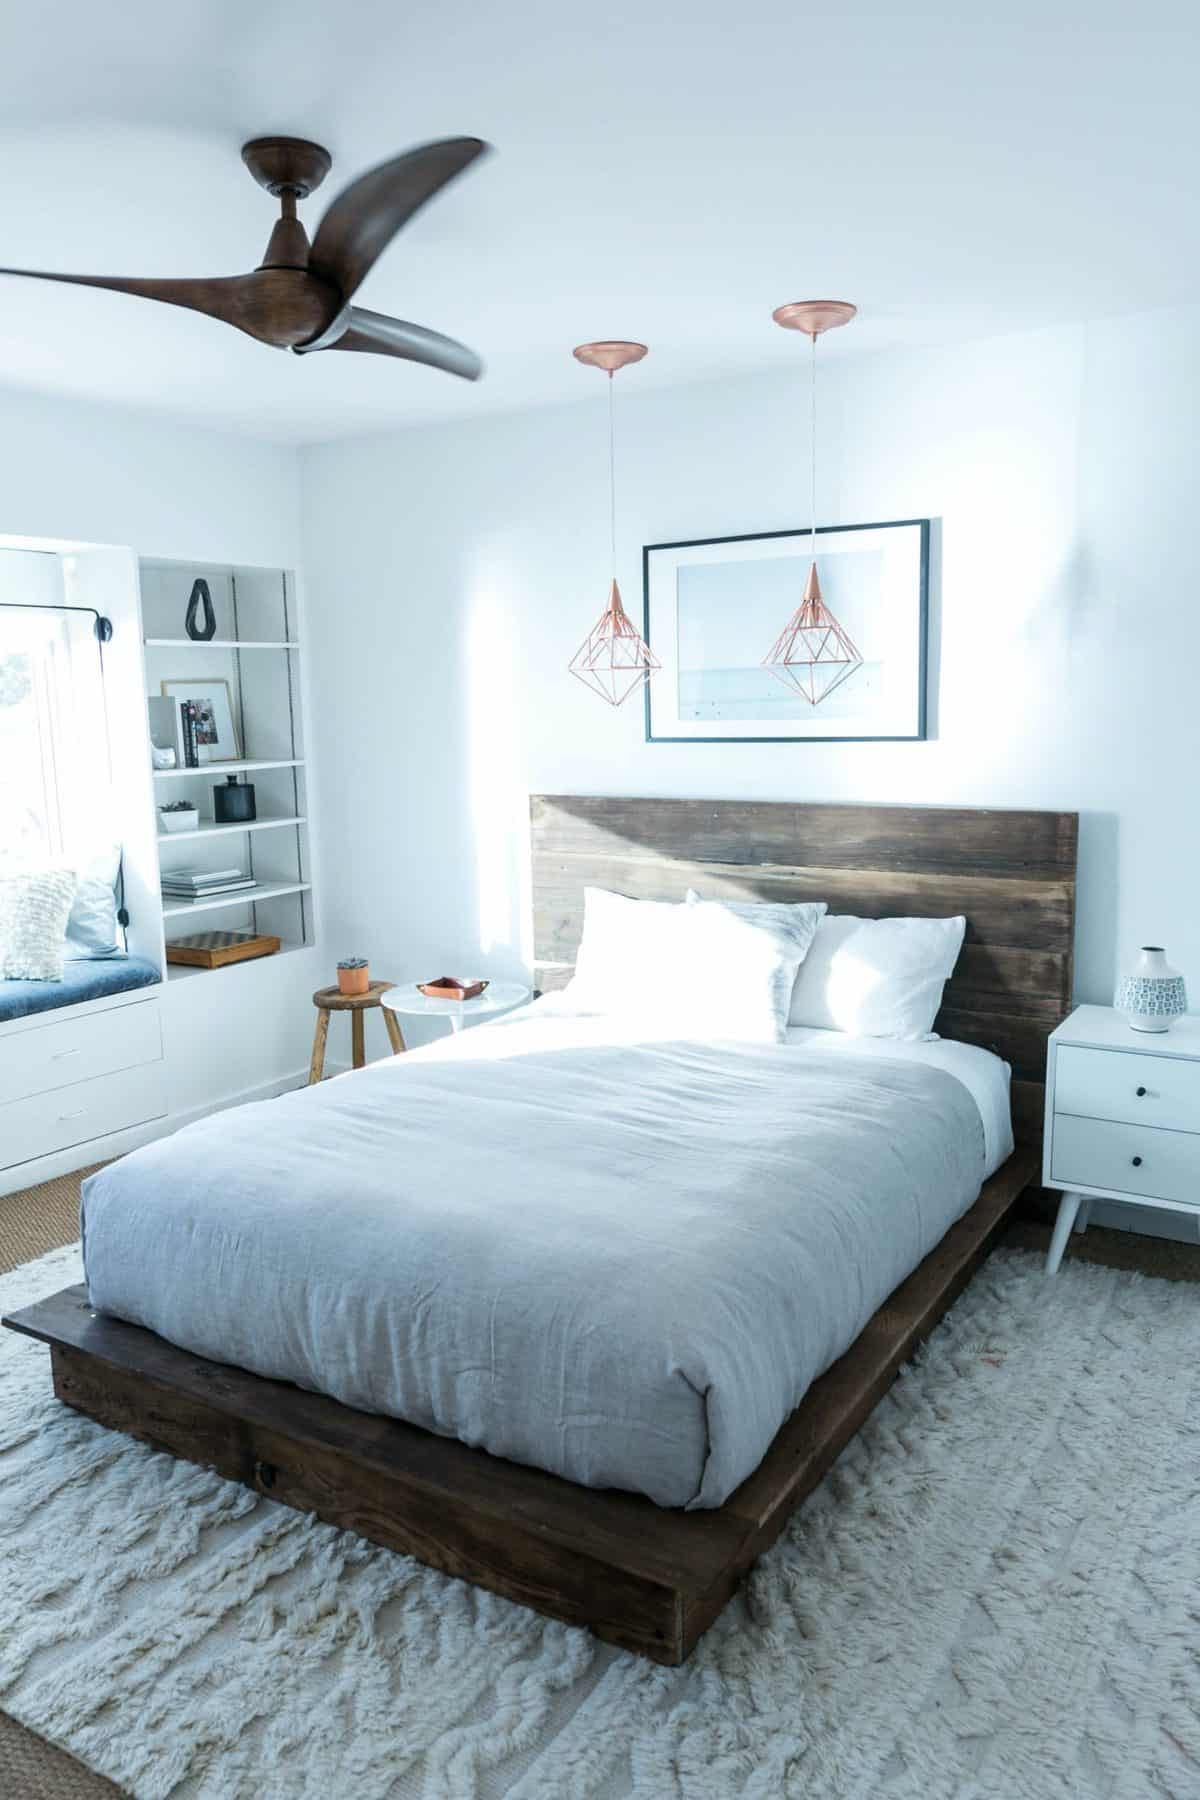 Reclaimed Wood Platform with Simple Headboard